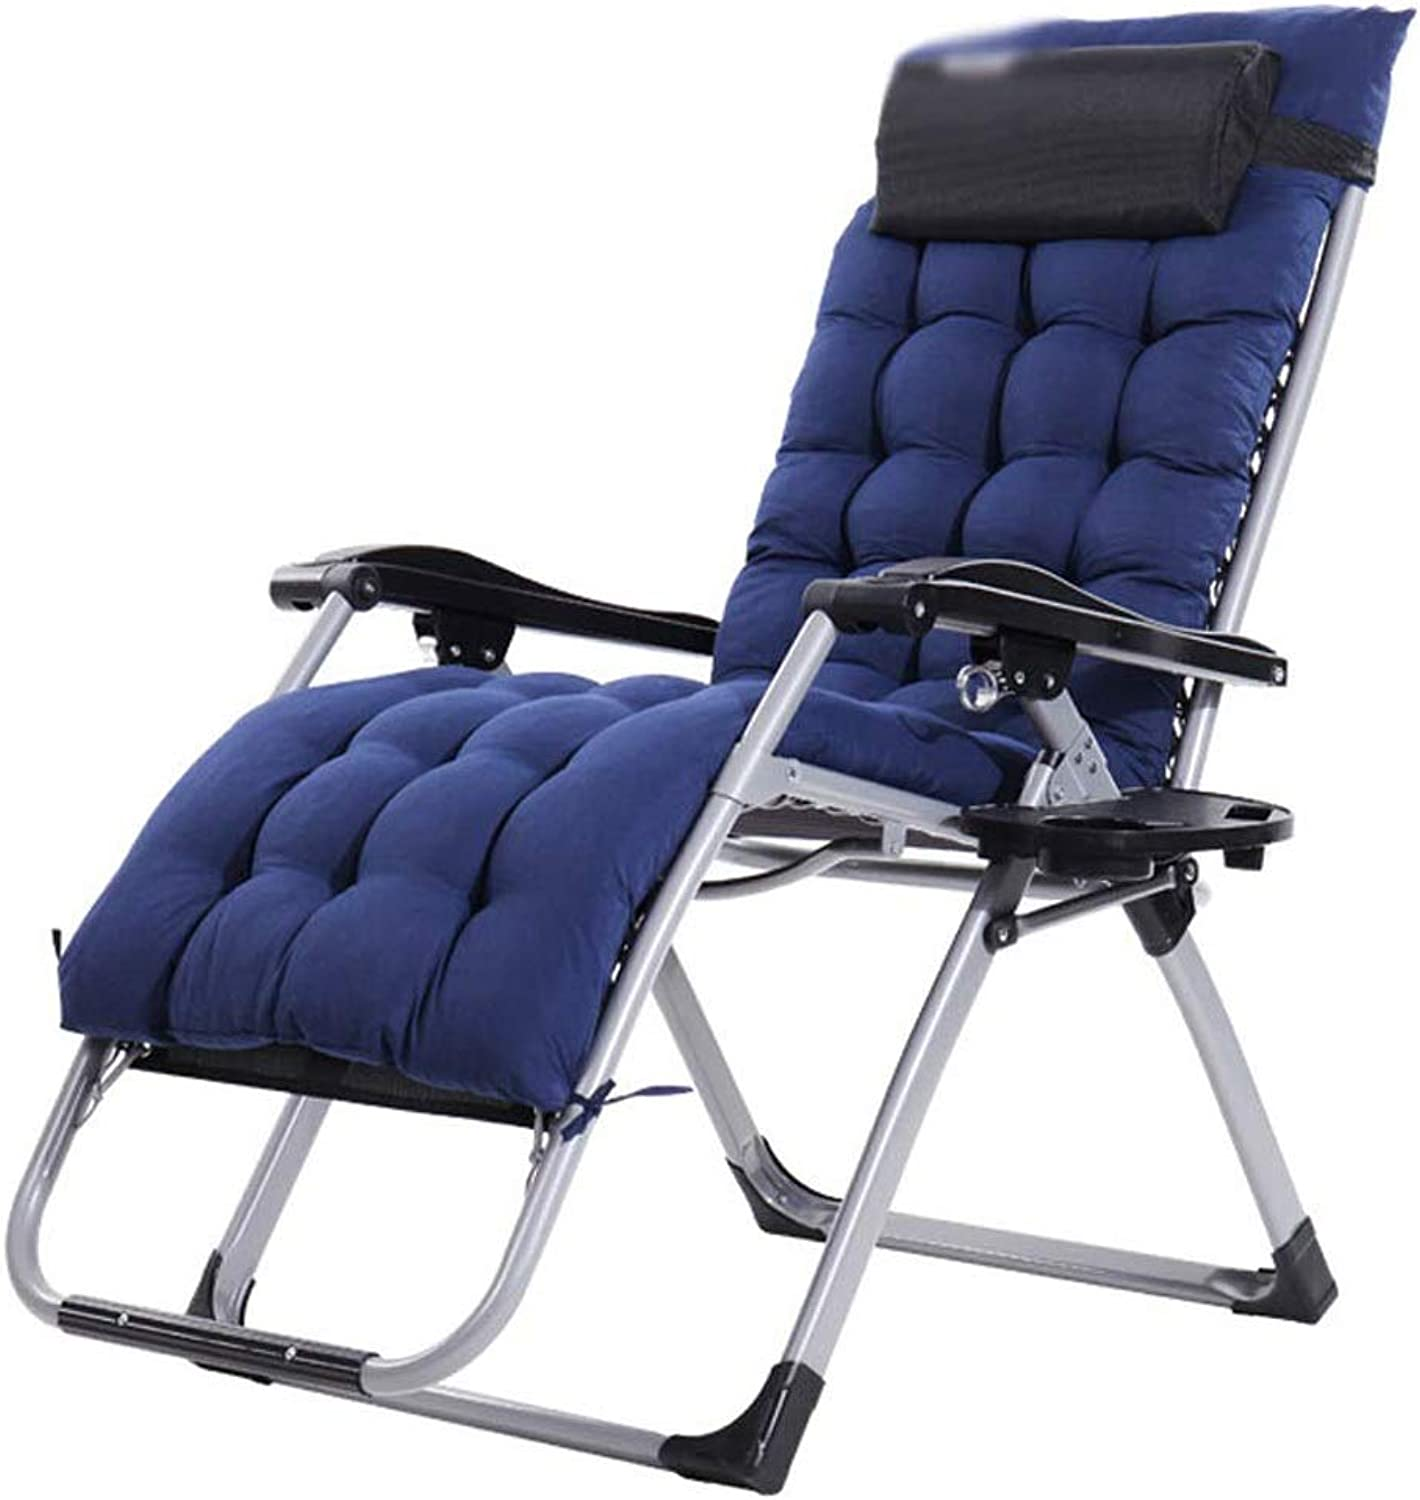 Foldable Backrest Comfortable Office Lunch Break Chair Portable Outdoor Folding Bed Chair Adjustable Nap Accompanying Bed Leisure Beach Chair